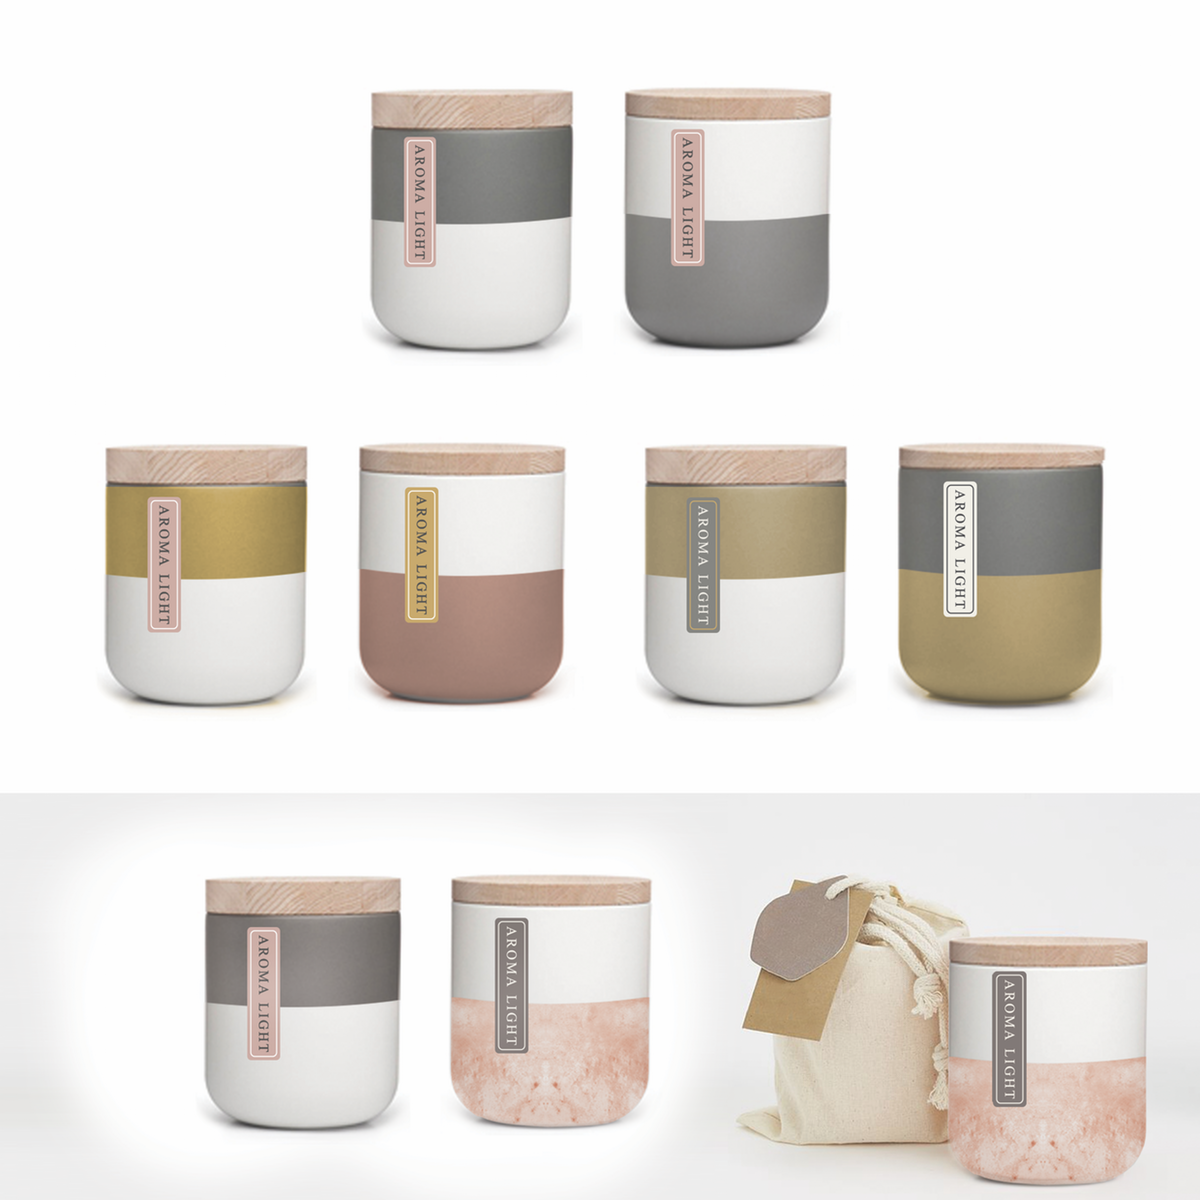 Product design for scented candles